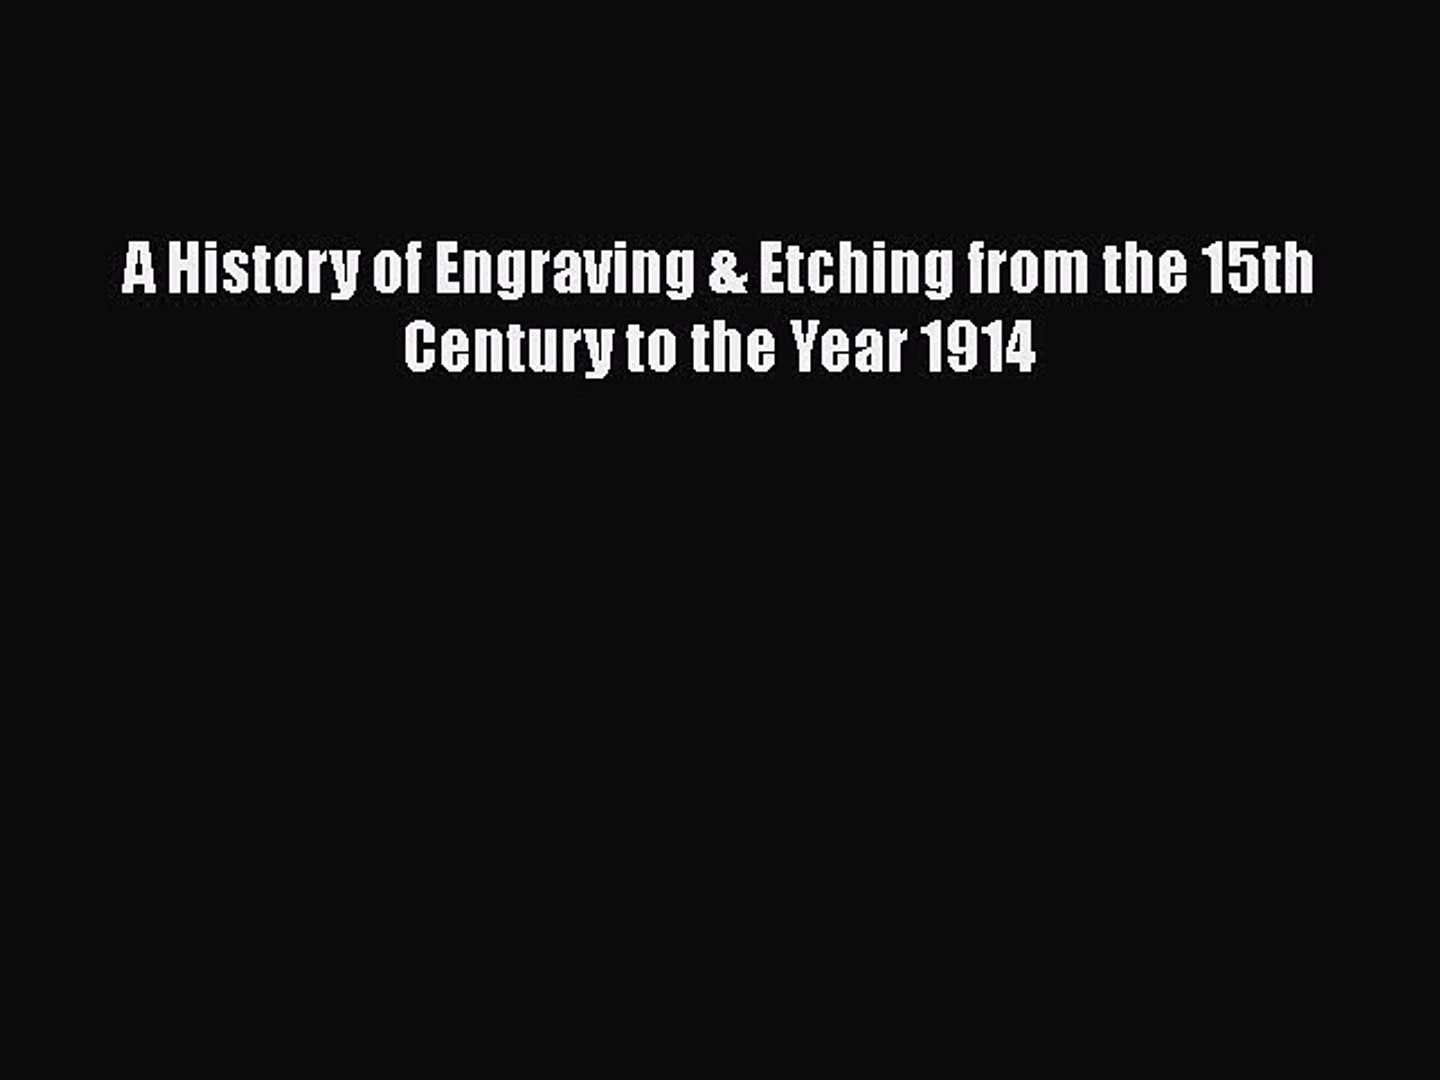 [PDF] A History of Engraving & Etching from the 15th Century to the Year 1914  Full EBook